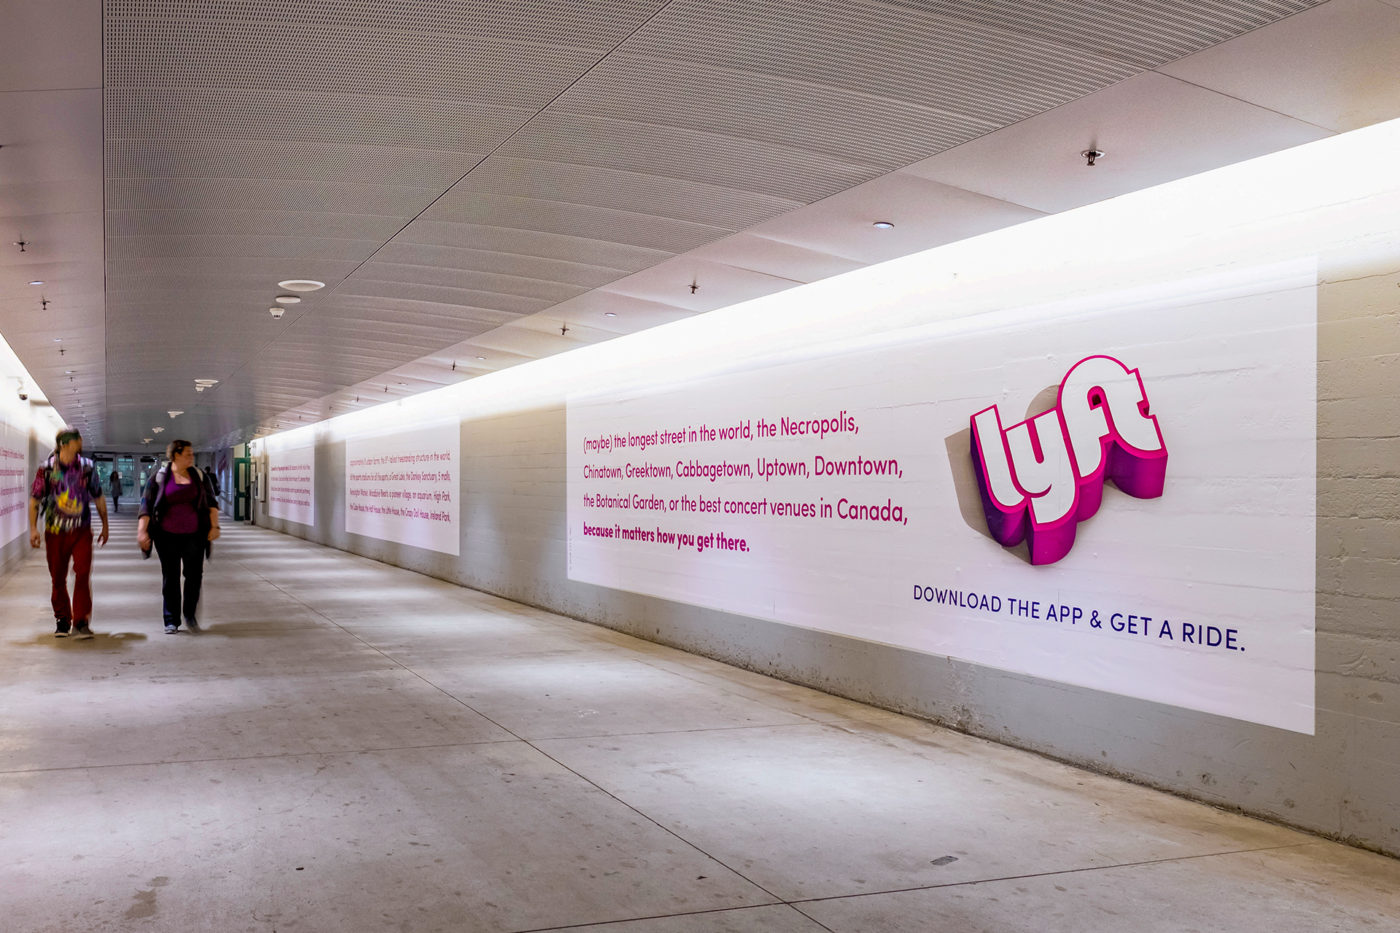 Lyft - App - Union Station - Wall Wrap (Toronto, Ontario)